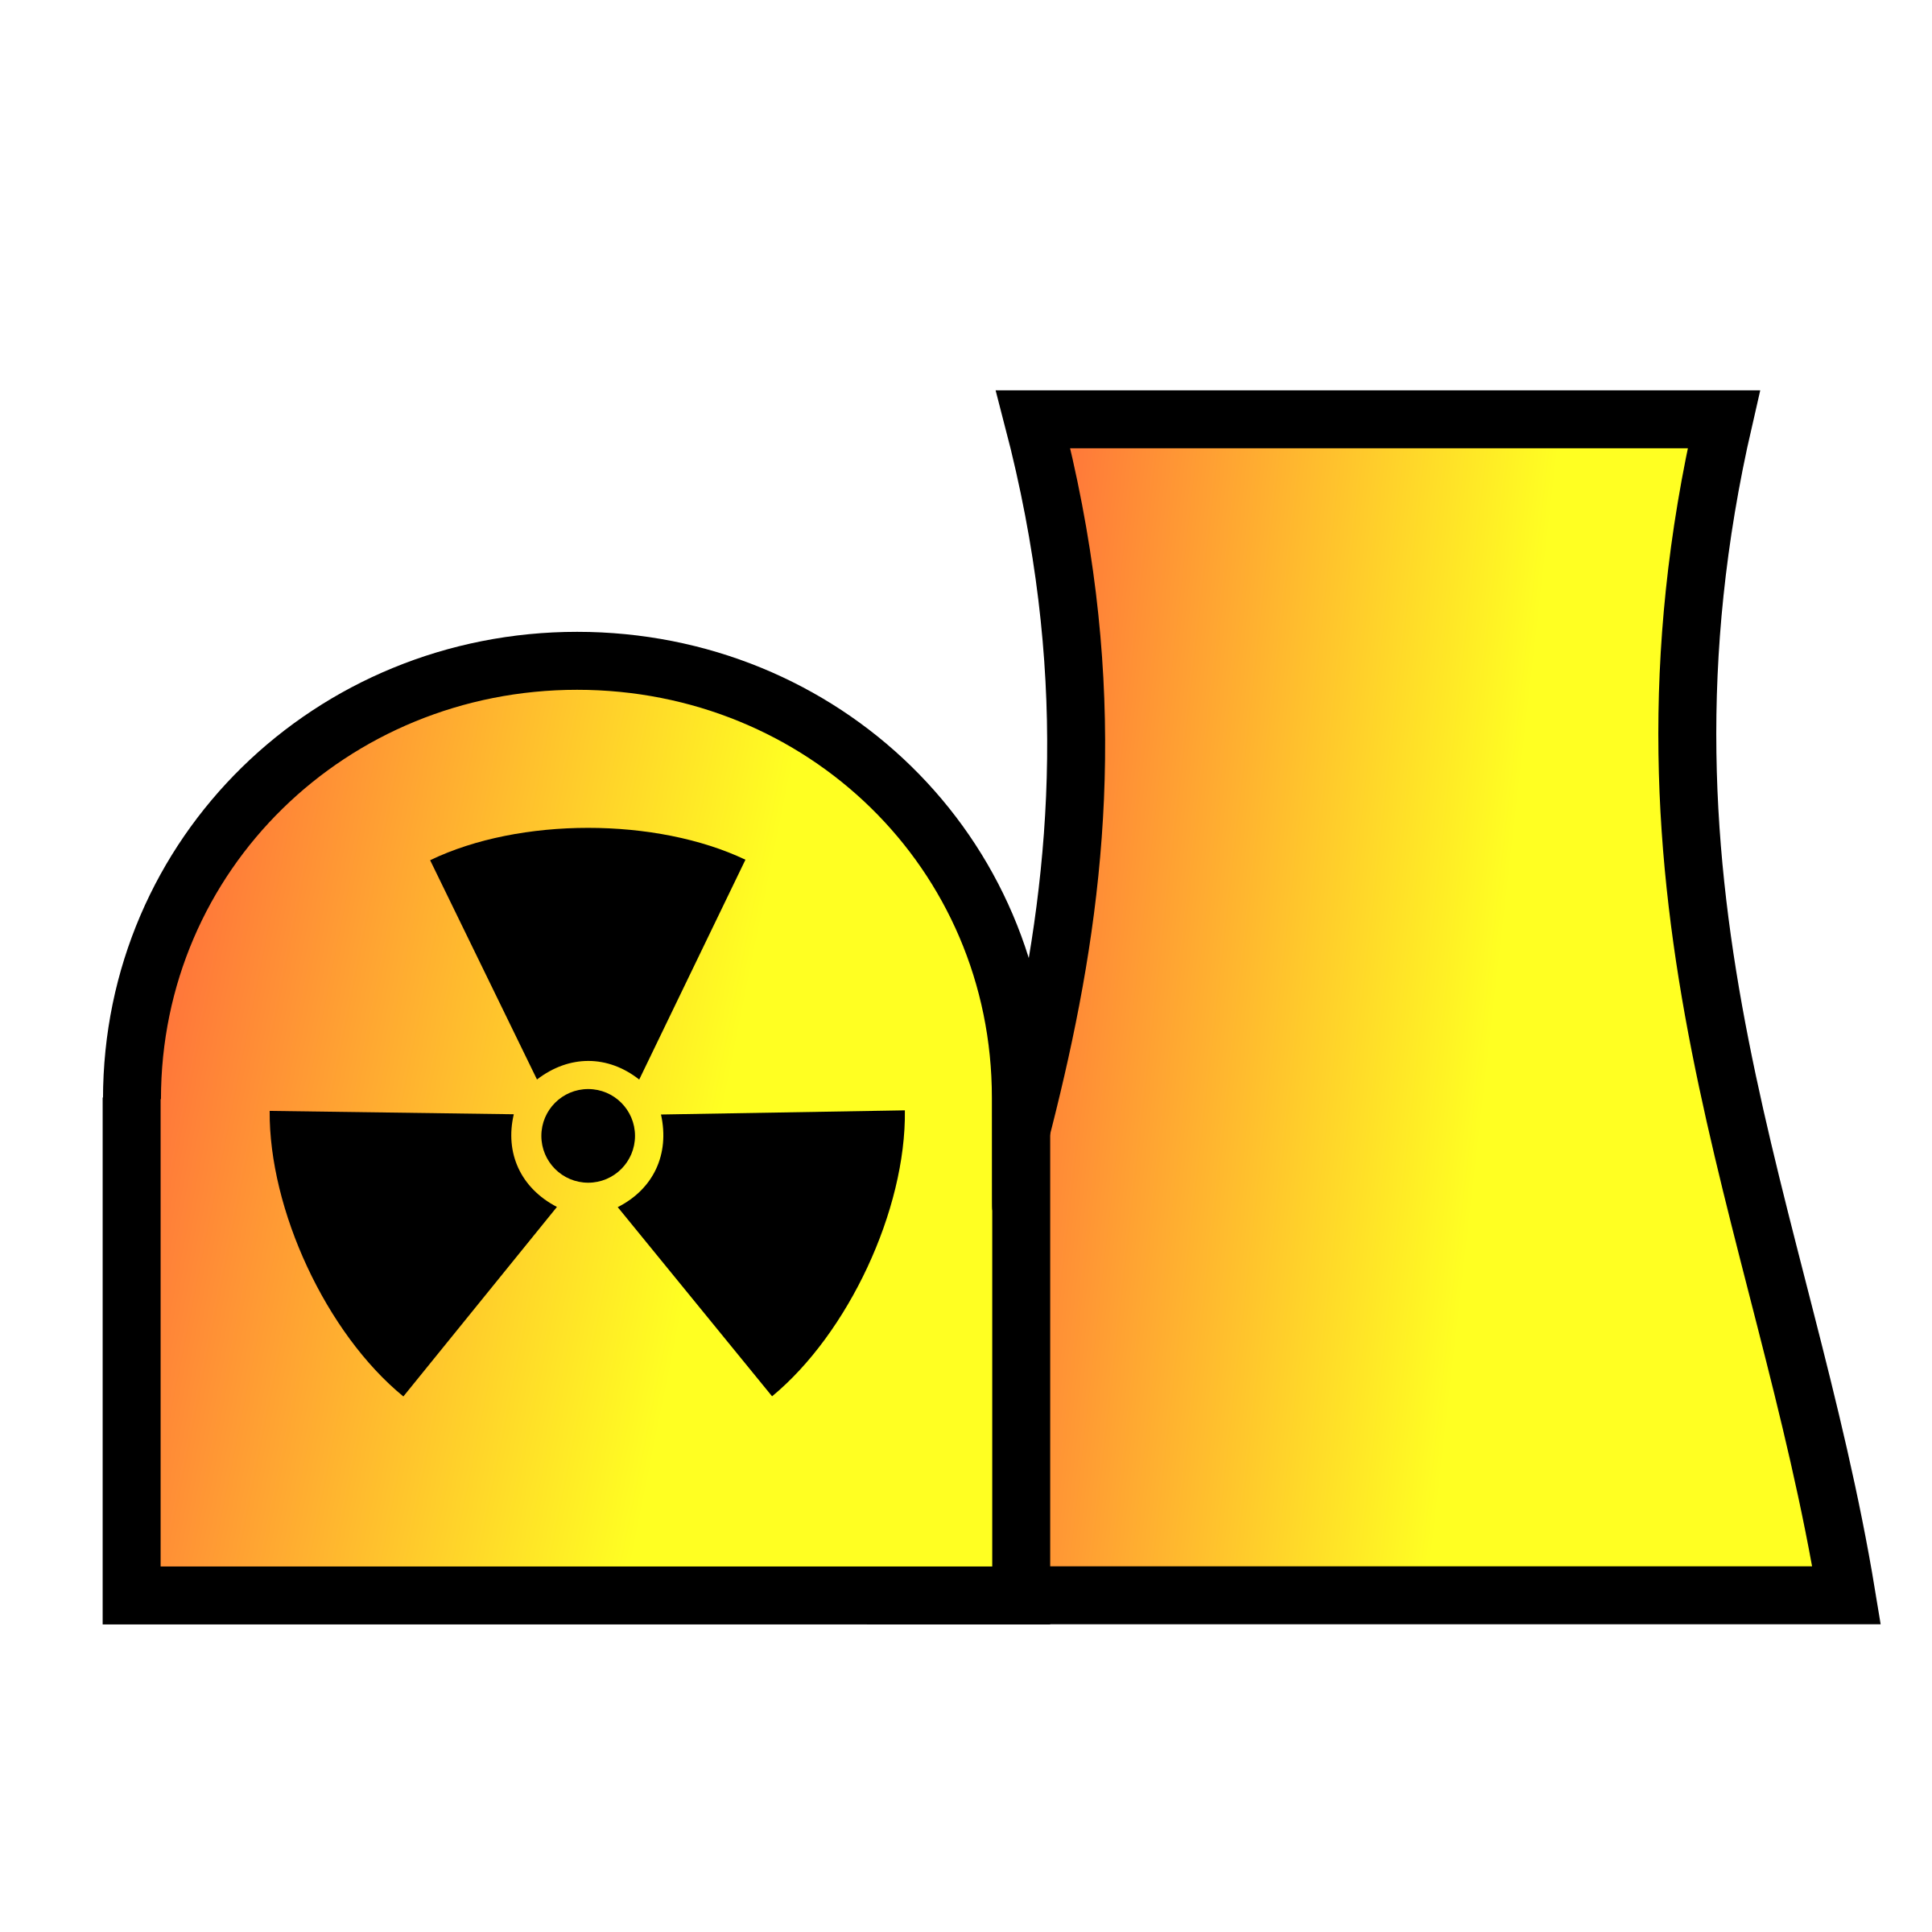 Nuclear power plant map symbol by Juhele